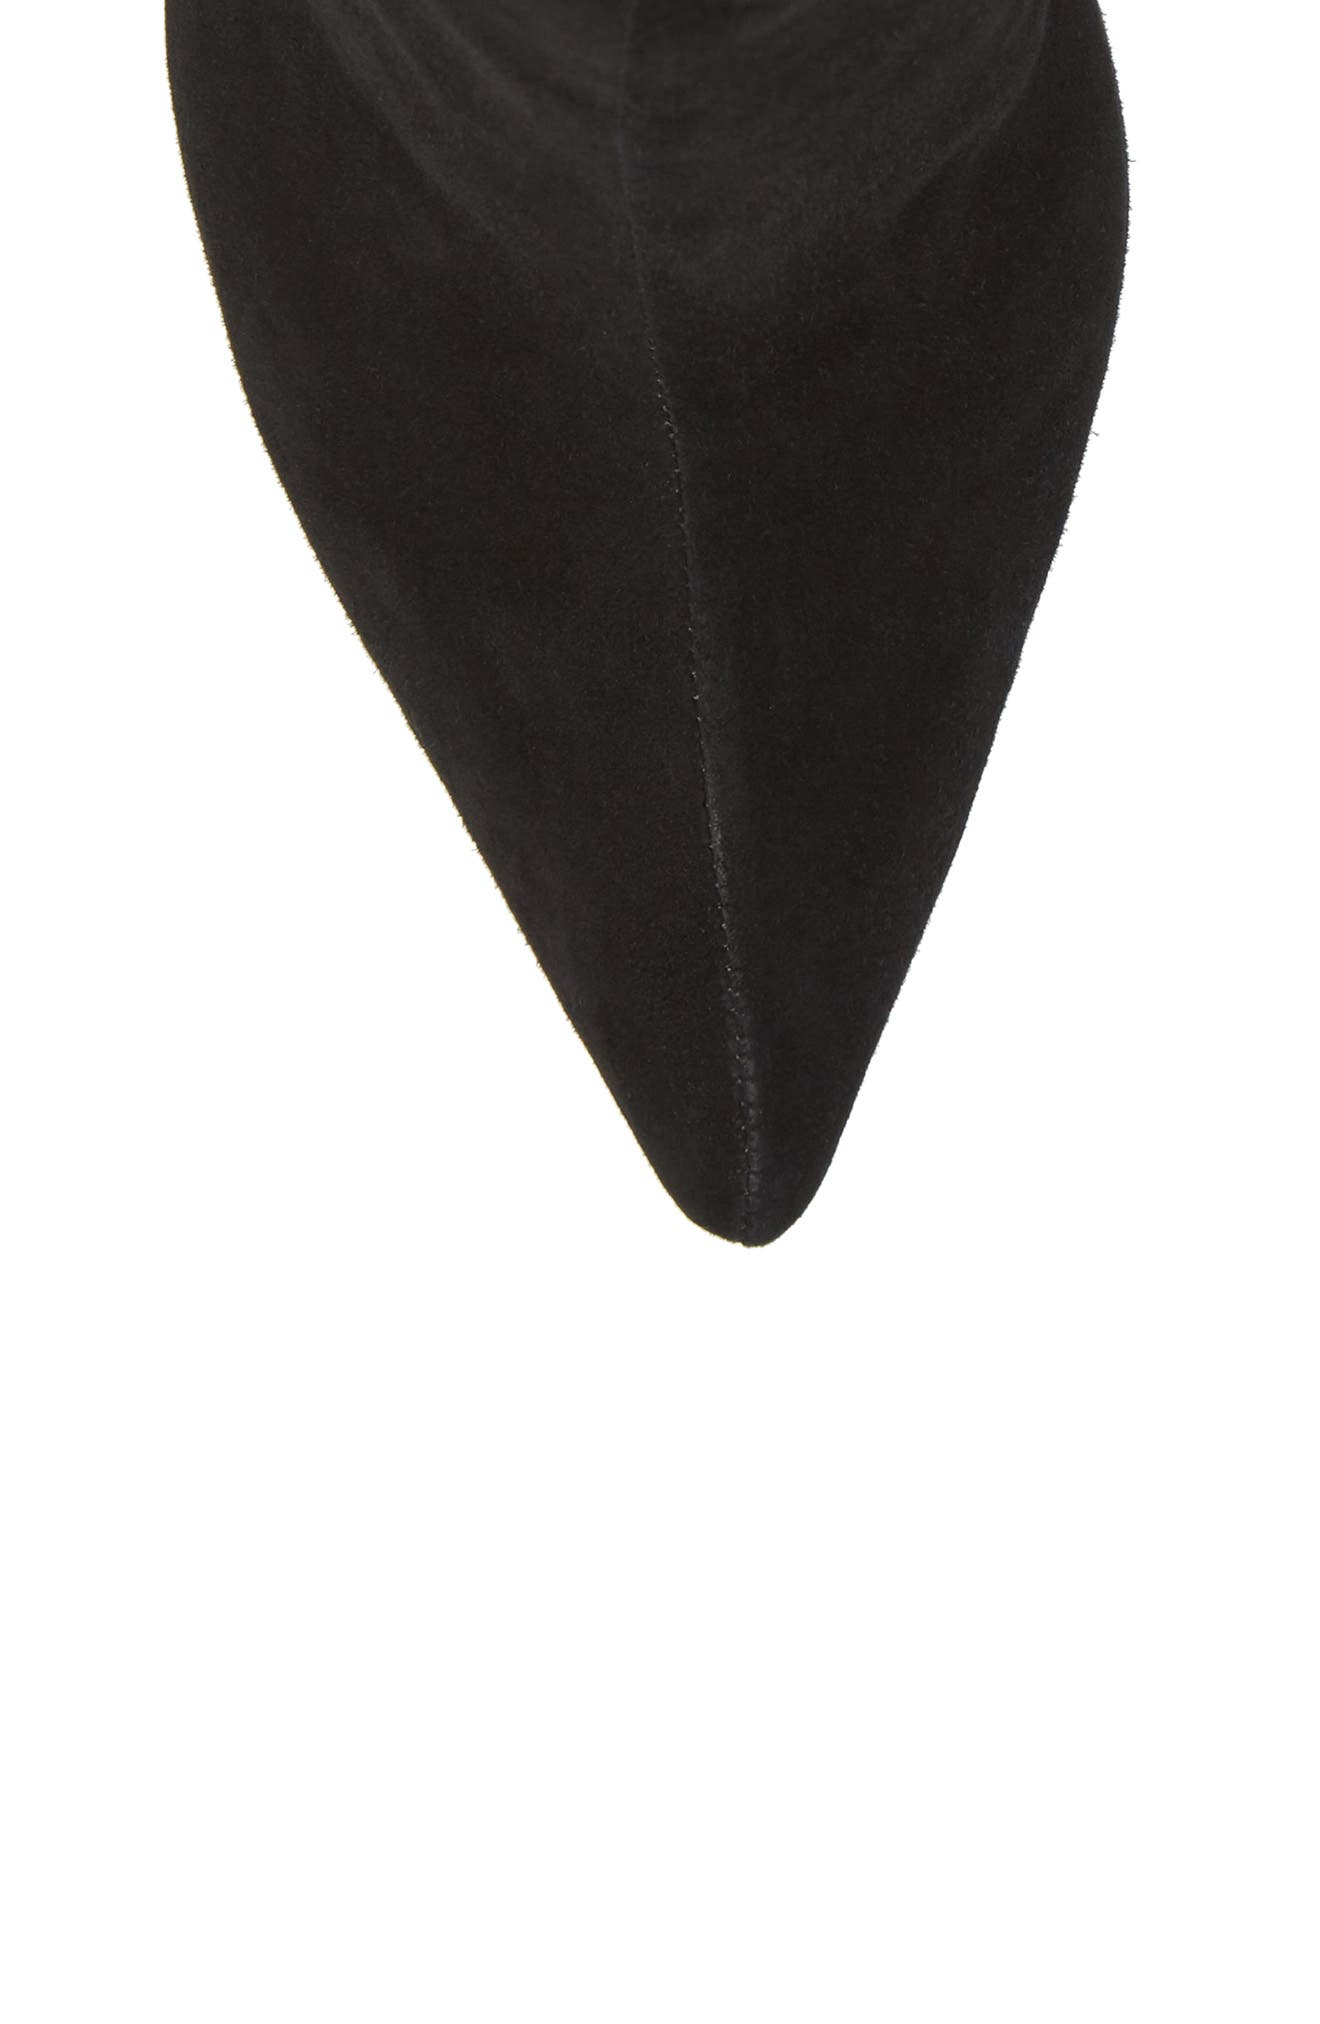 Tati Pointy Toe Bootie,                             Alternate thumbnail 5, color,                             Black Suede